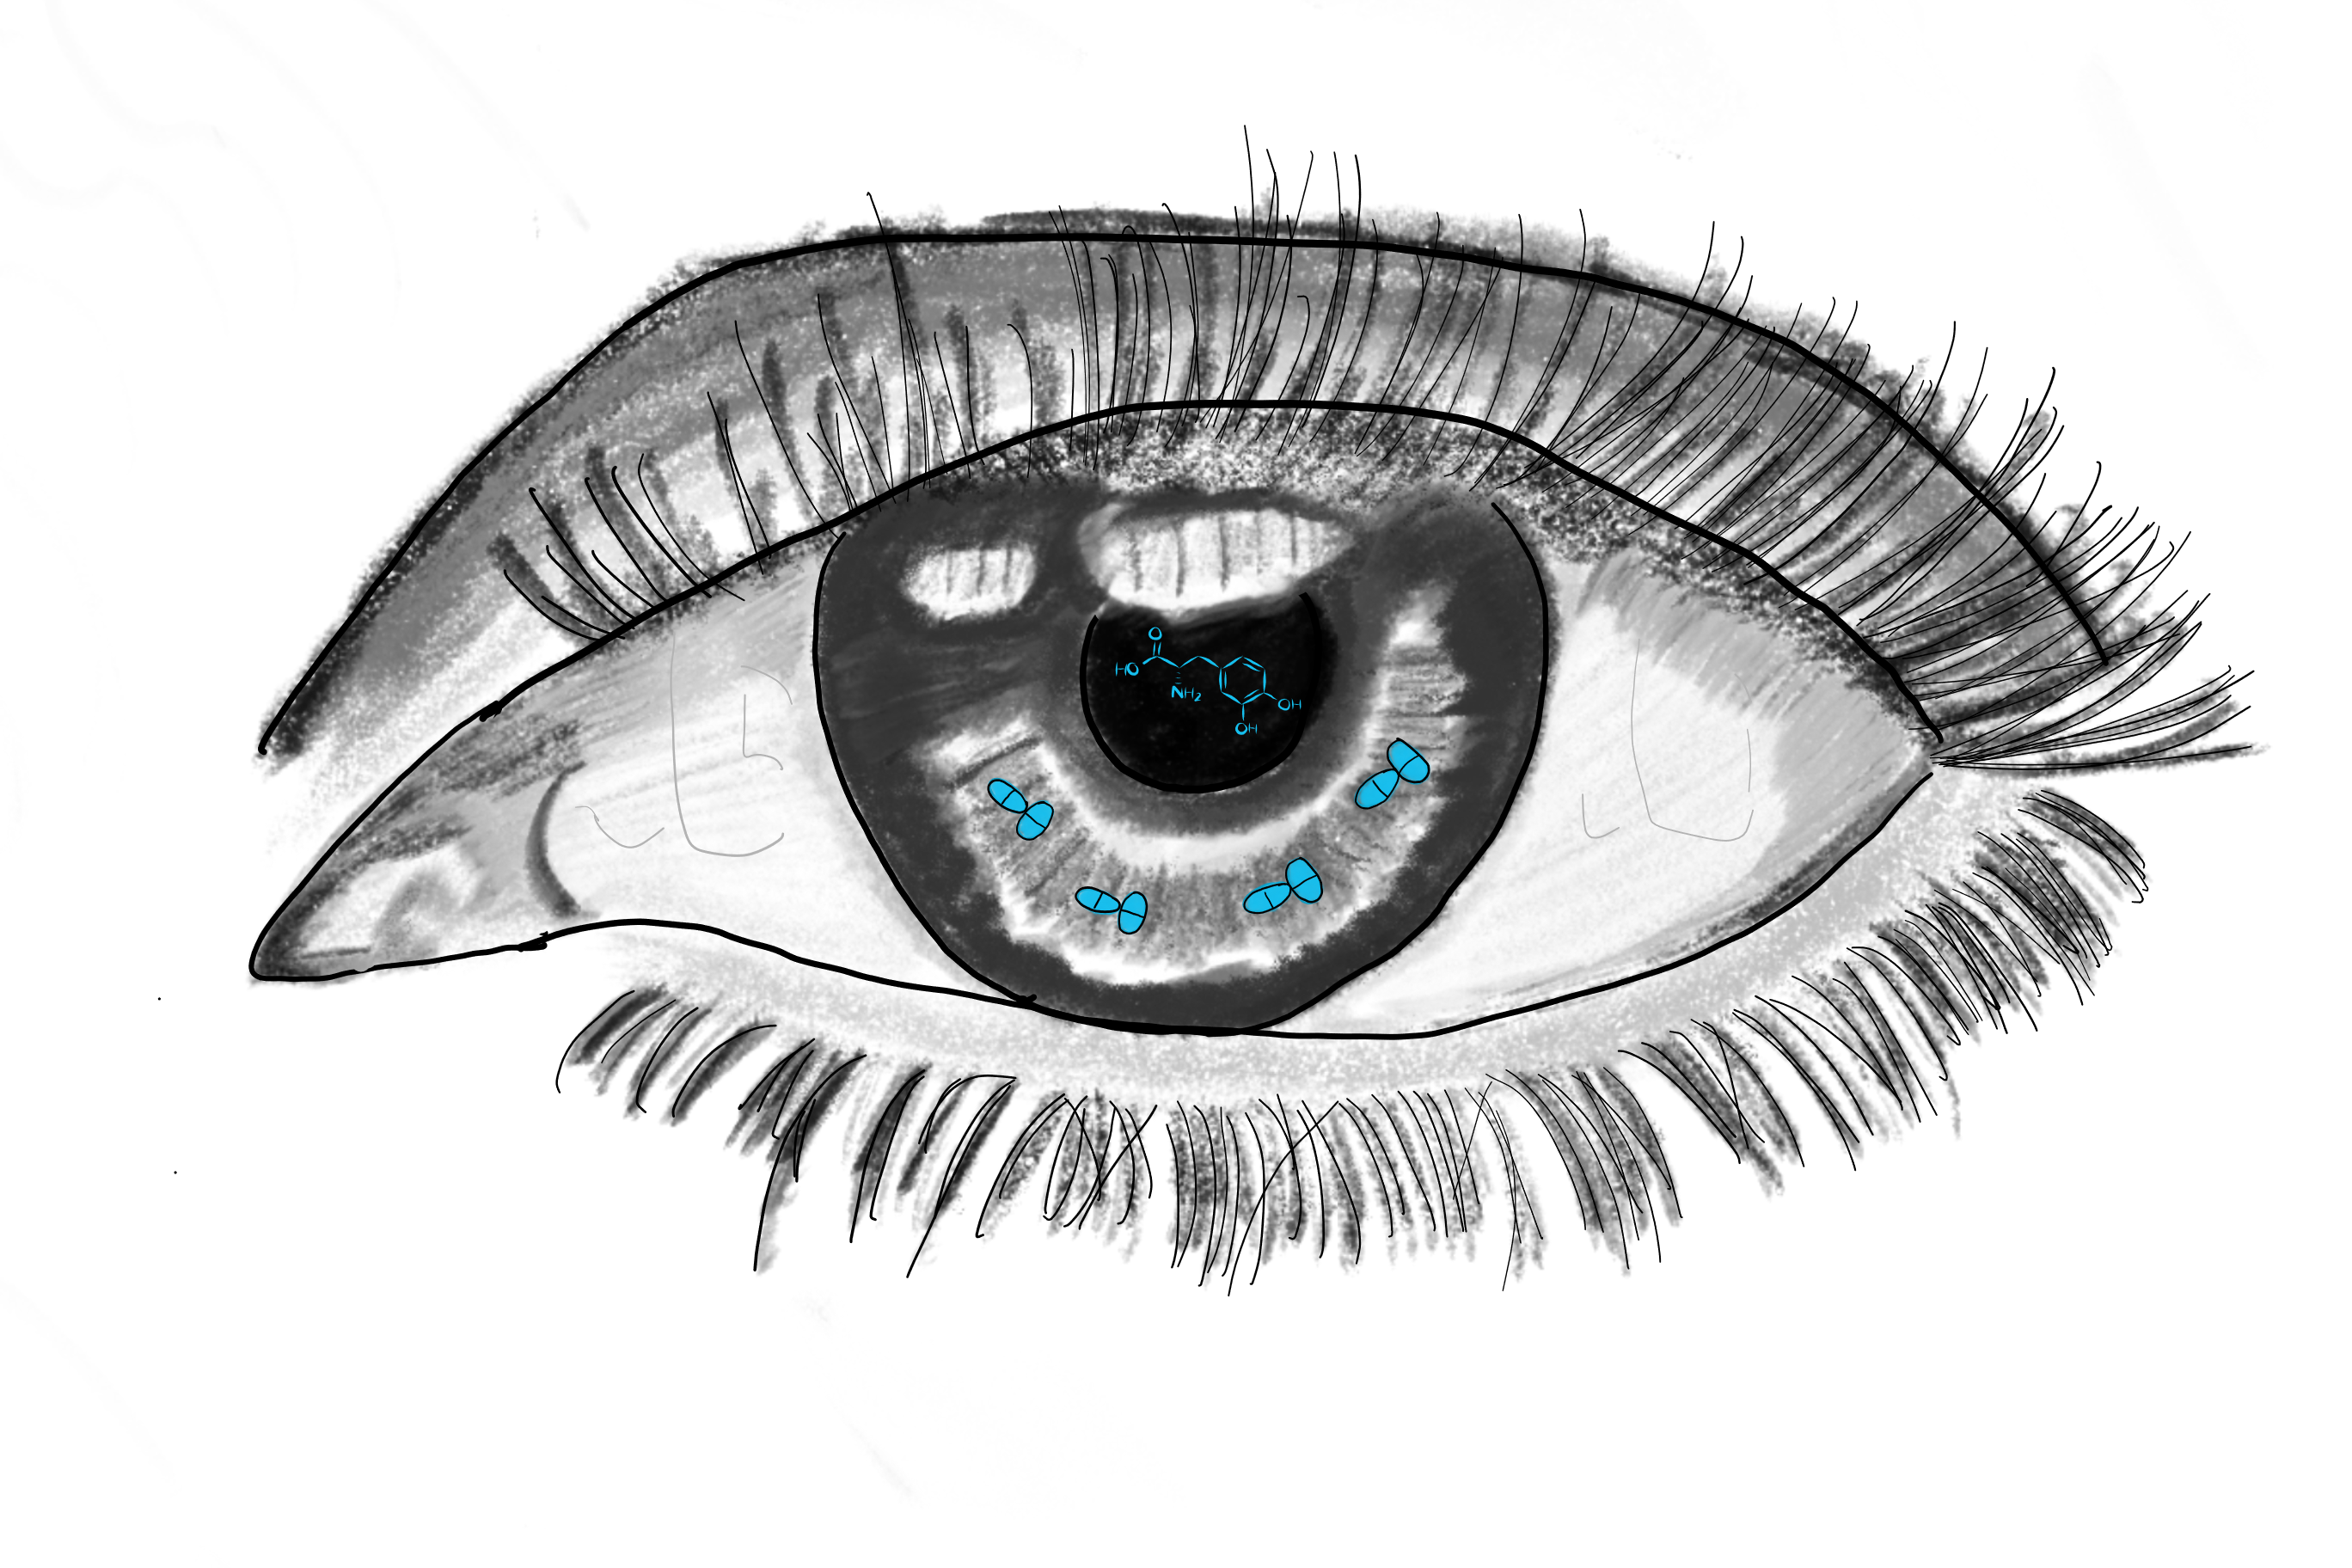 Black-and-white ketch of an eye with long lashes; tiny blue pills on the iris and a drug molecule on the pupil are the only source of color.